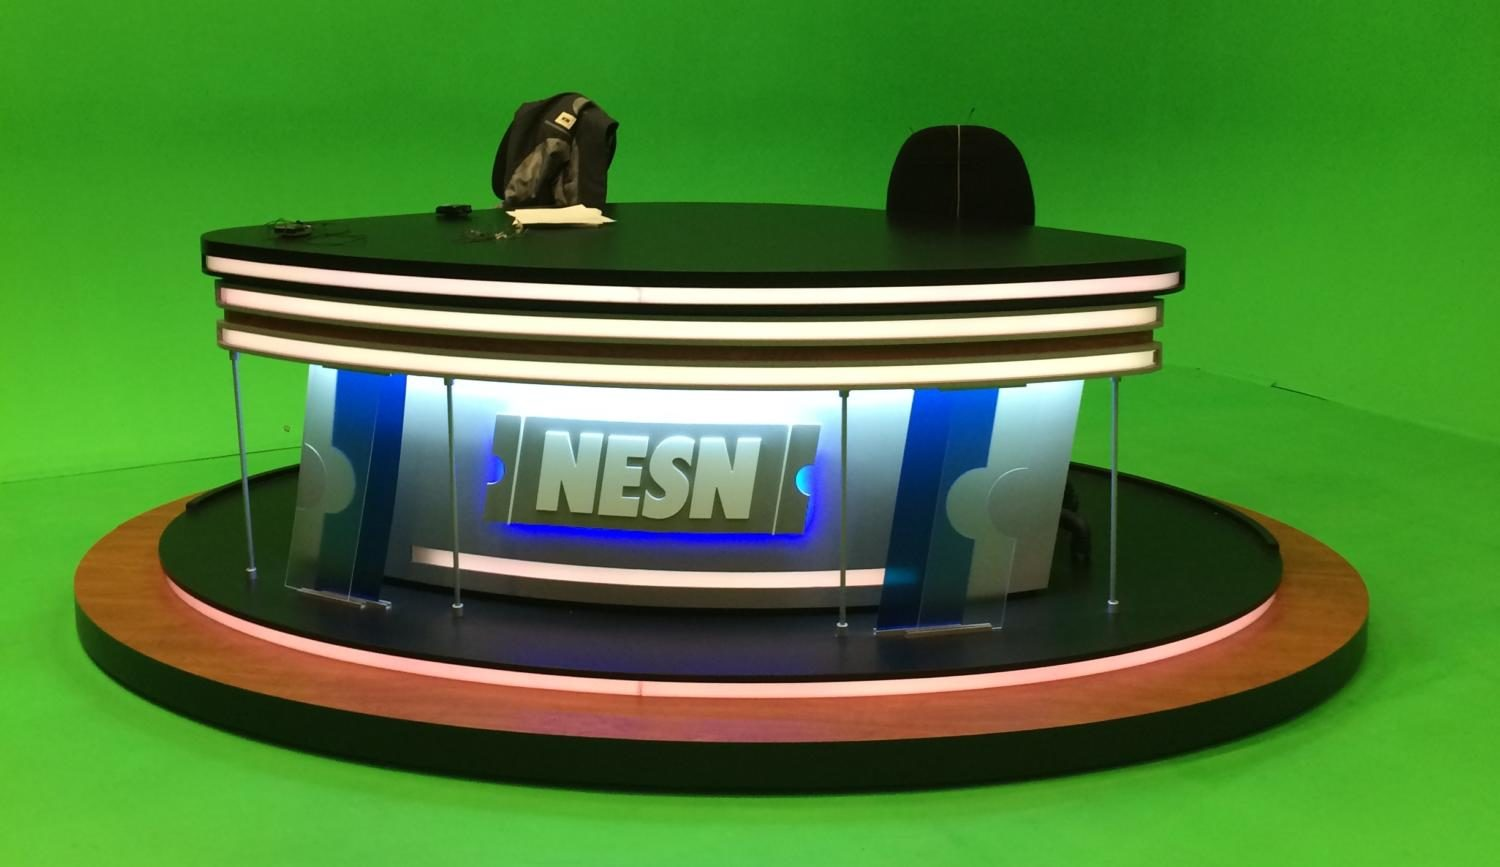 Studio+B%2C+with+its+green-screen+backdrop%2C+is+where+shows+such+as+%E2%80%9CNESN+Sports+Today%E2%80%9D+are+filmed+inside+the+Watertown%2C+Mass.%2C+production+facilities.+